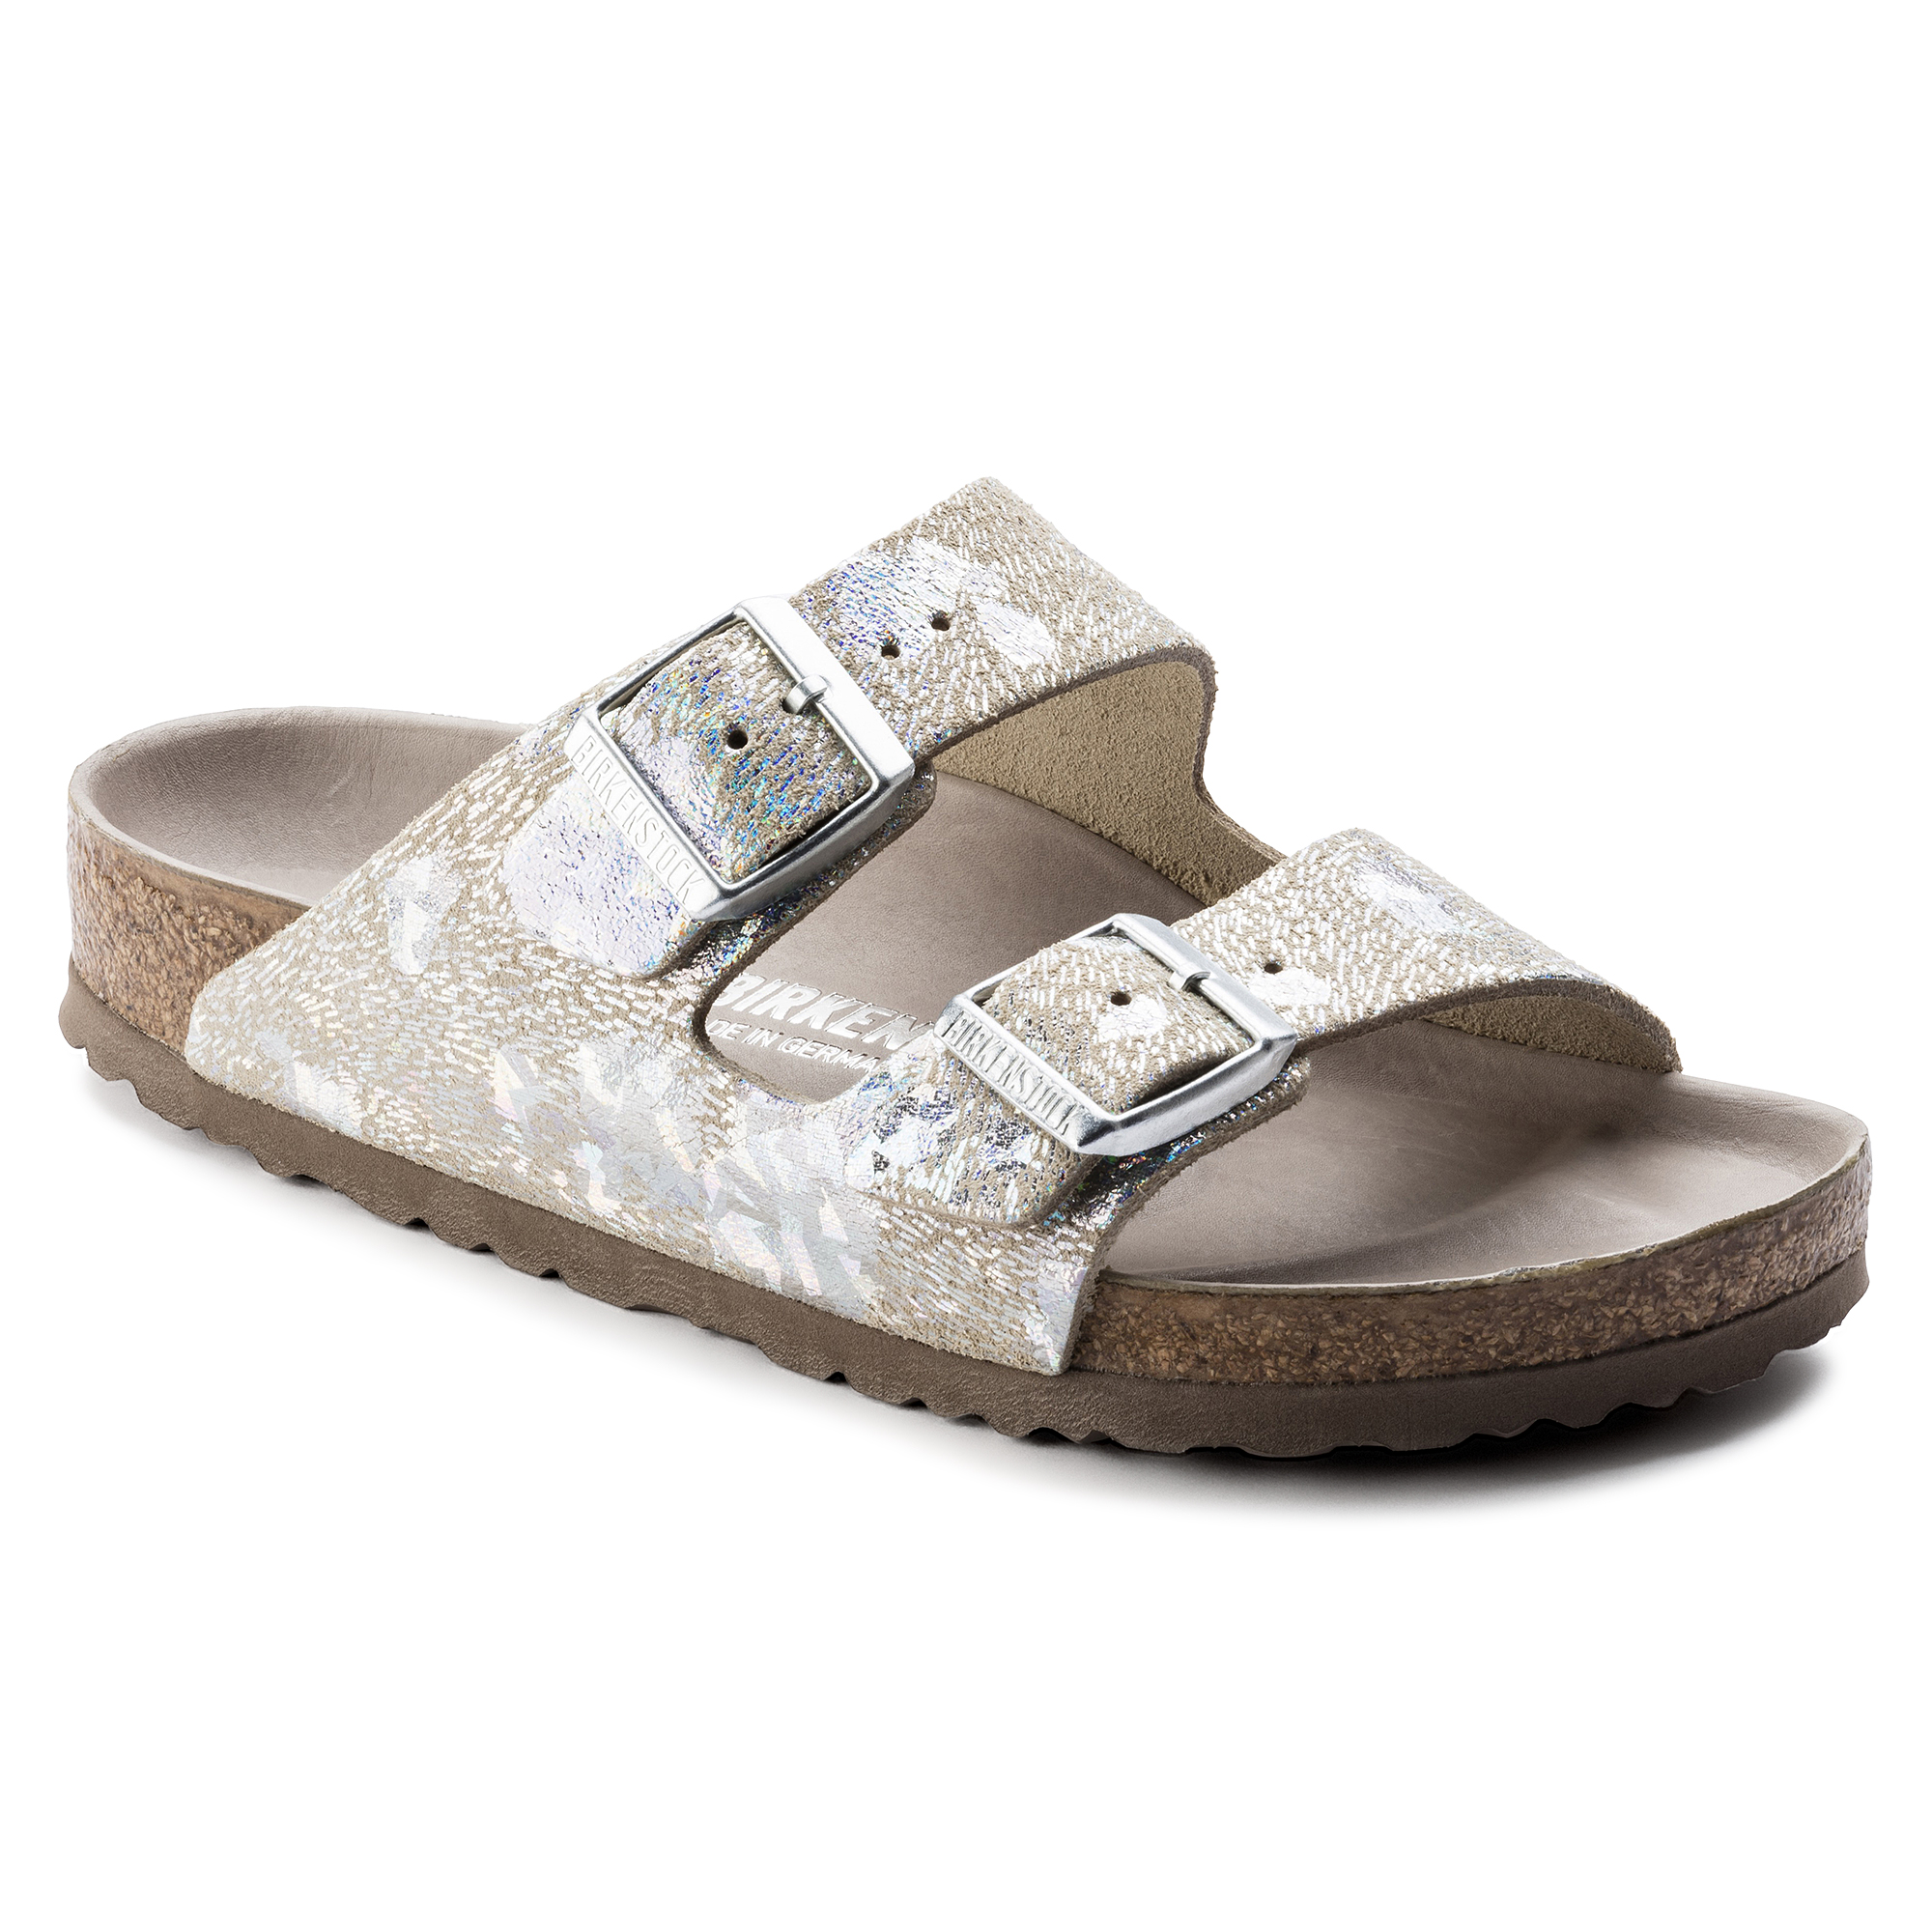 9940c30c5341 Arizona Natural Leather Spotted Metallic Silver